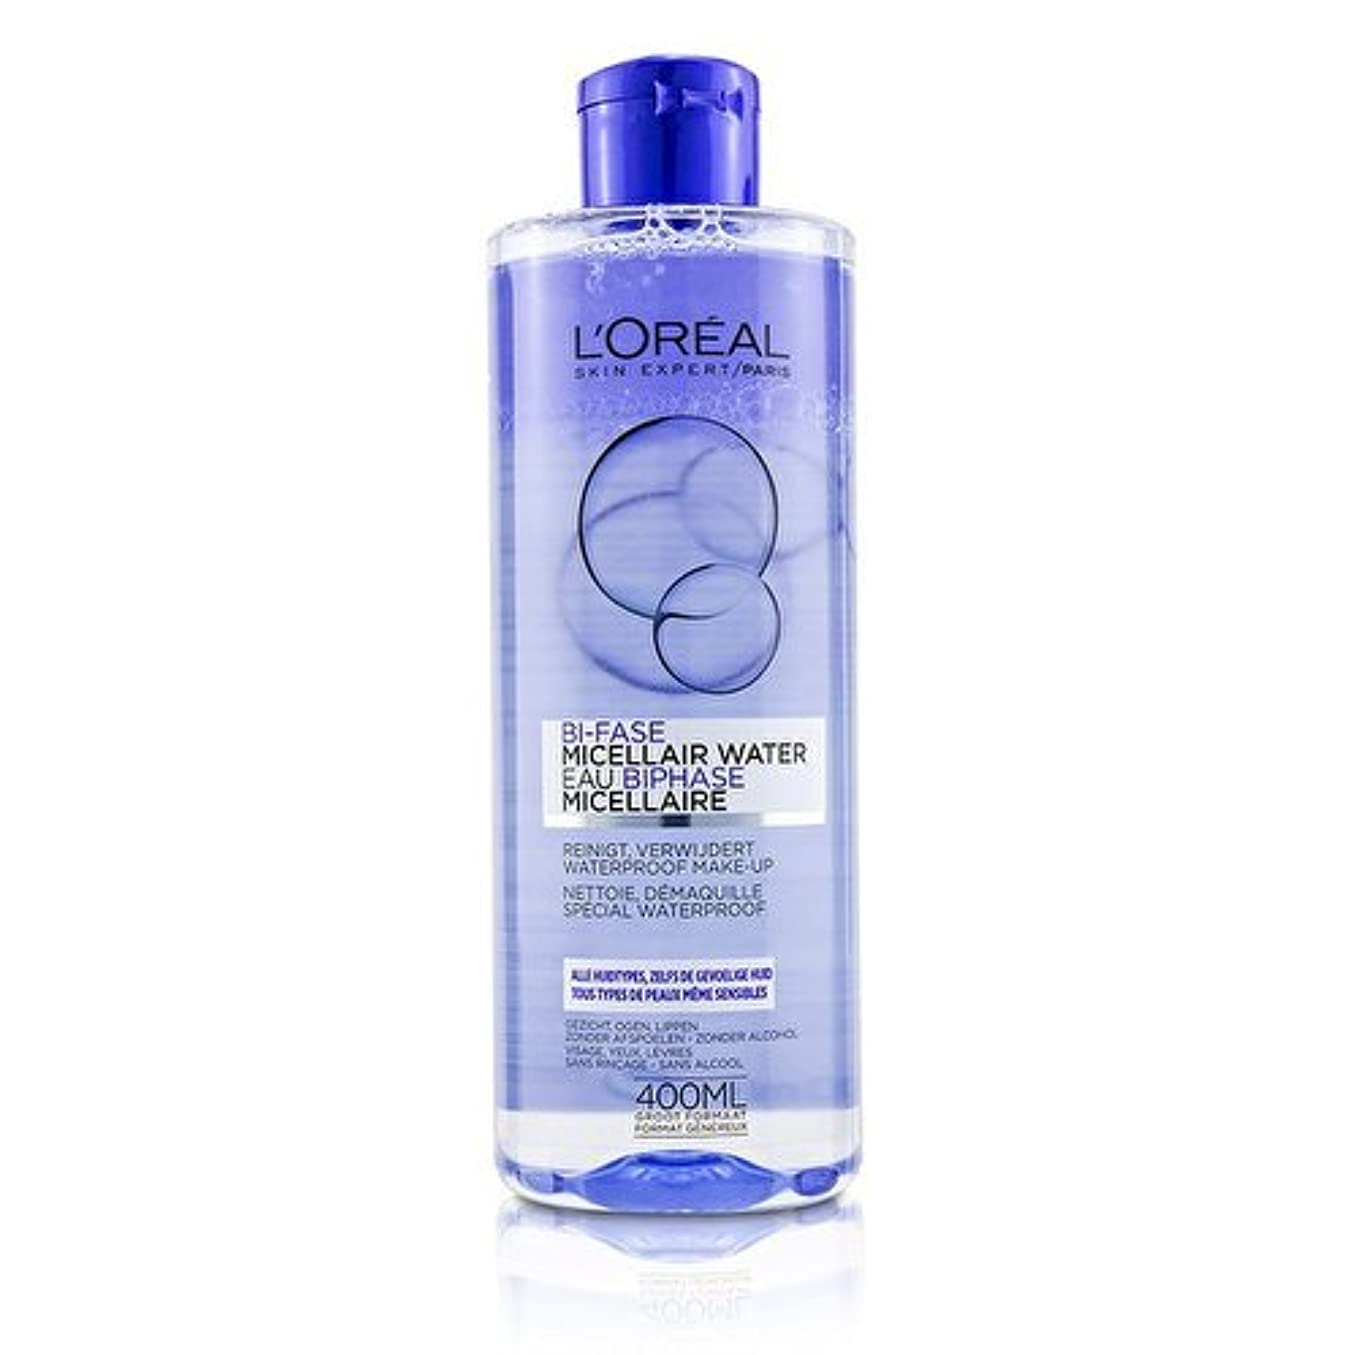 めったに夕食を作るラフレシアアルノルディロレアル Bi-Phase Micellar Water (Bi-Fase Micellair Water) - For All Skin Types, even Sensitive Skin 400ml/13.3oz並行輸入品